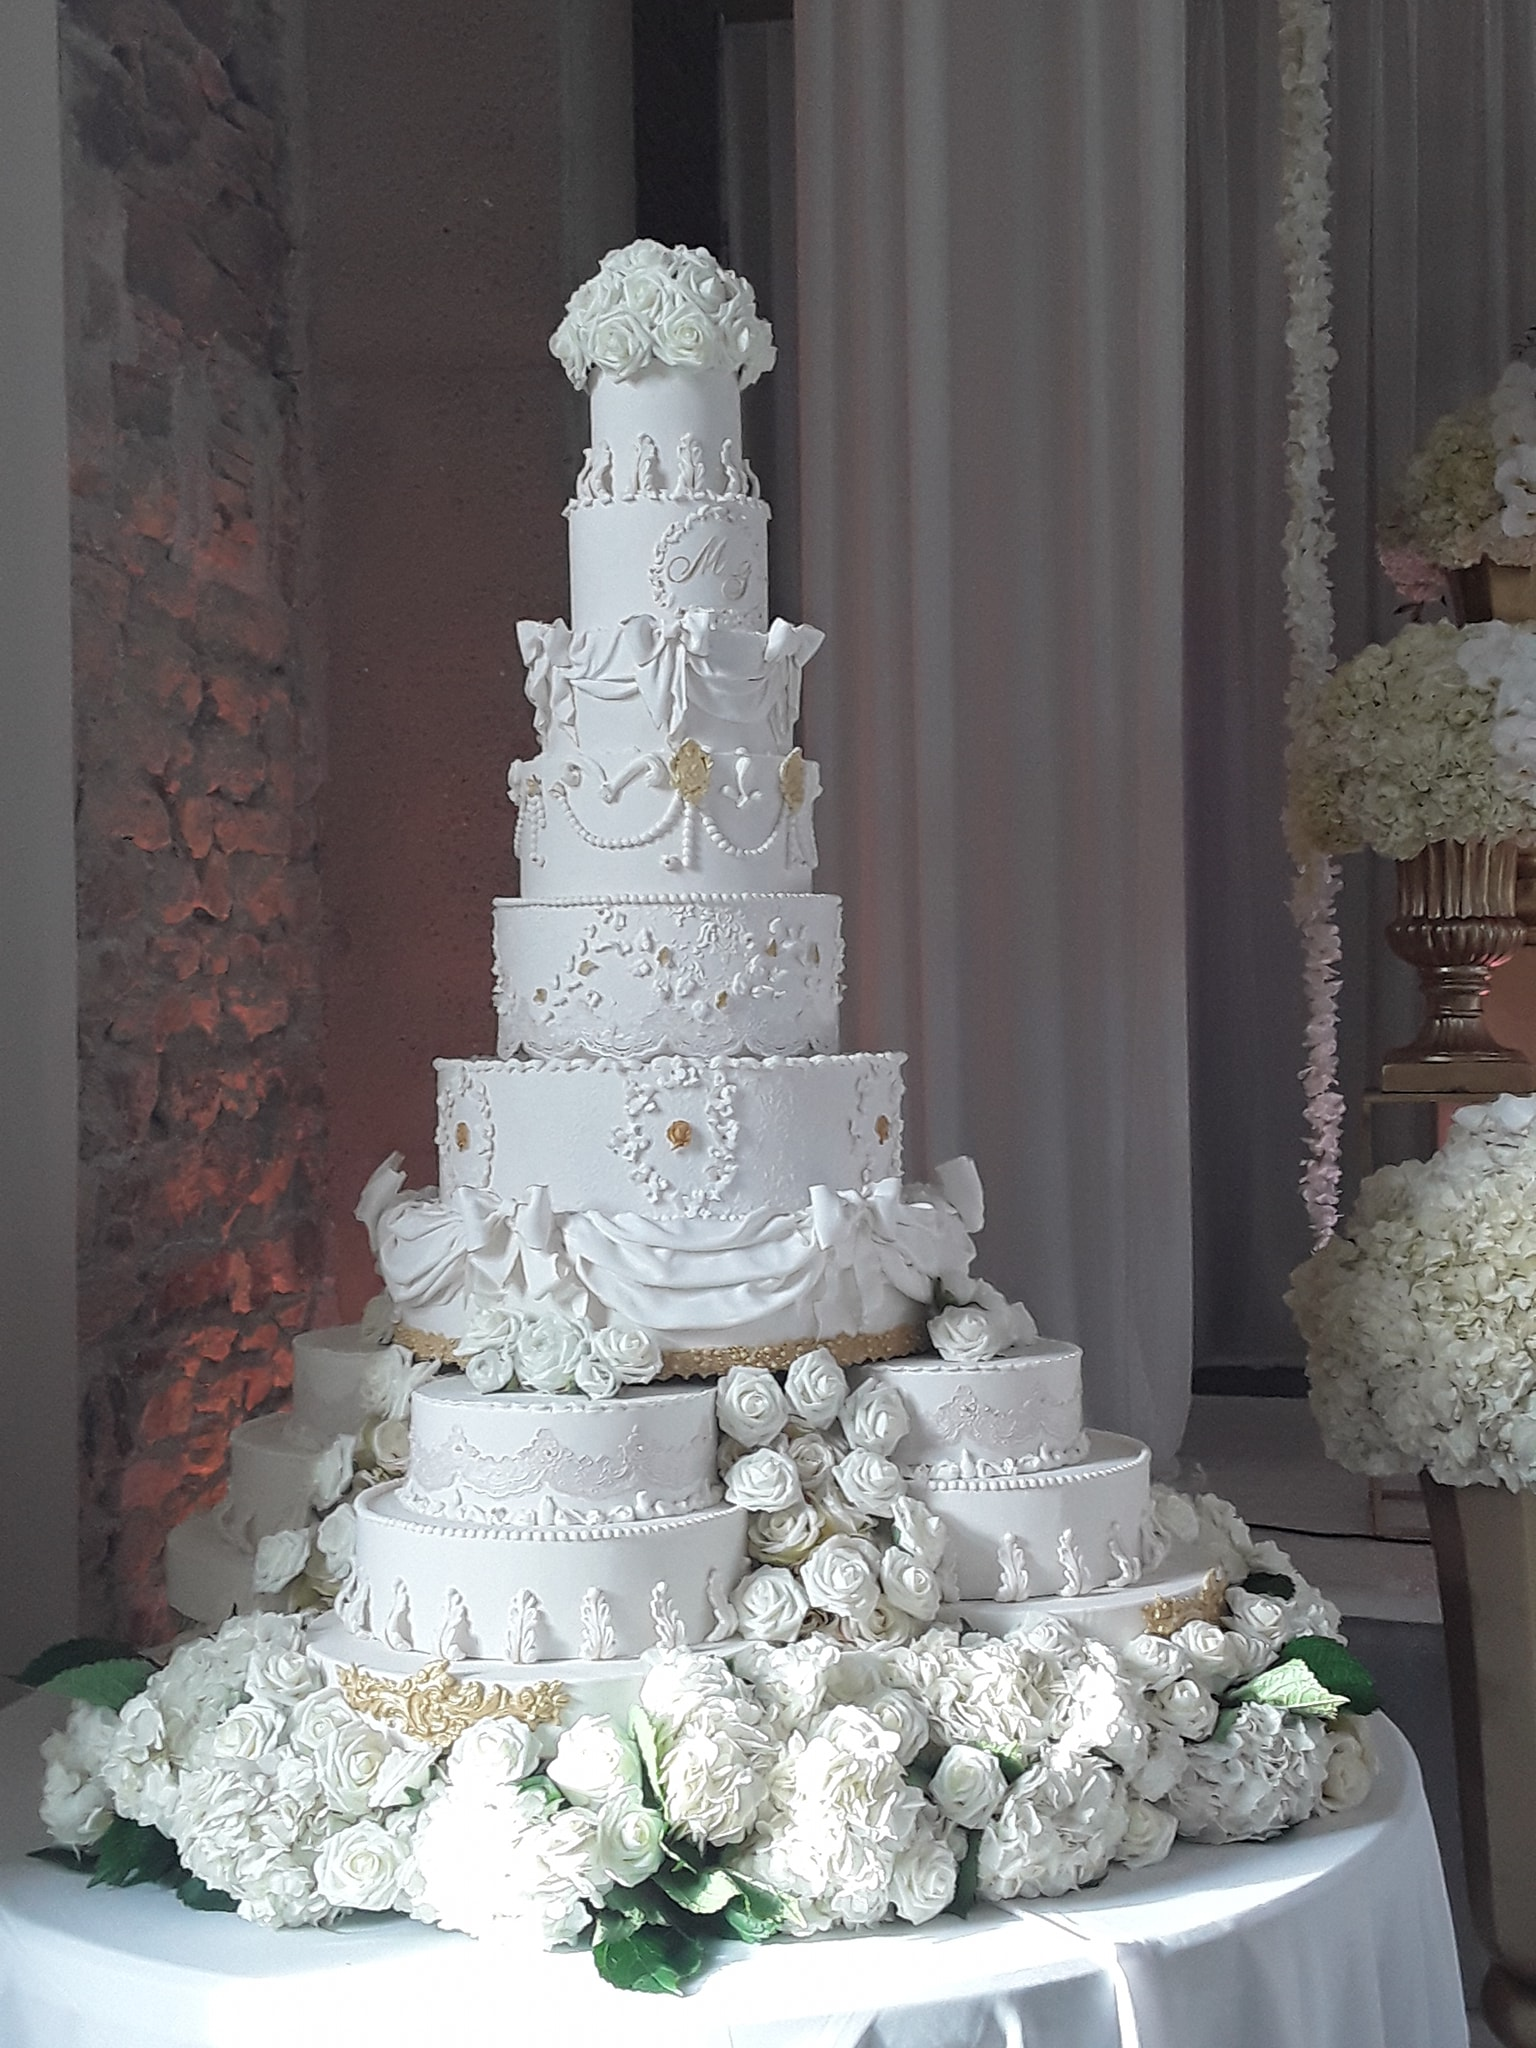 GRAND WEDDING CAKE BLANC ET OR